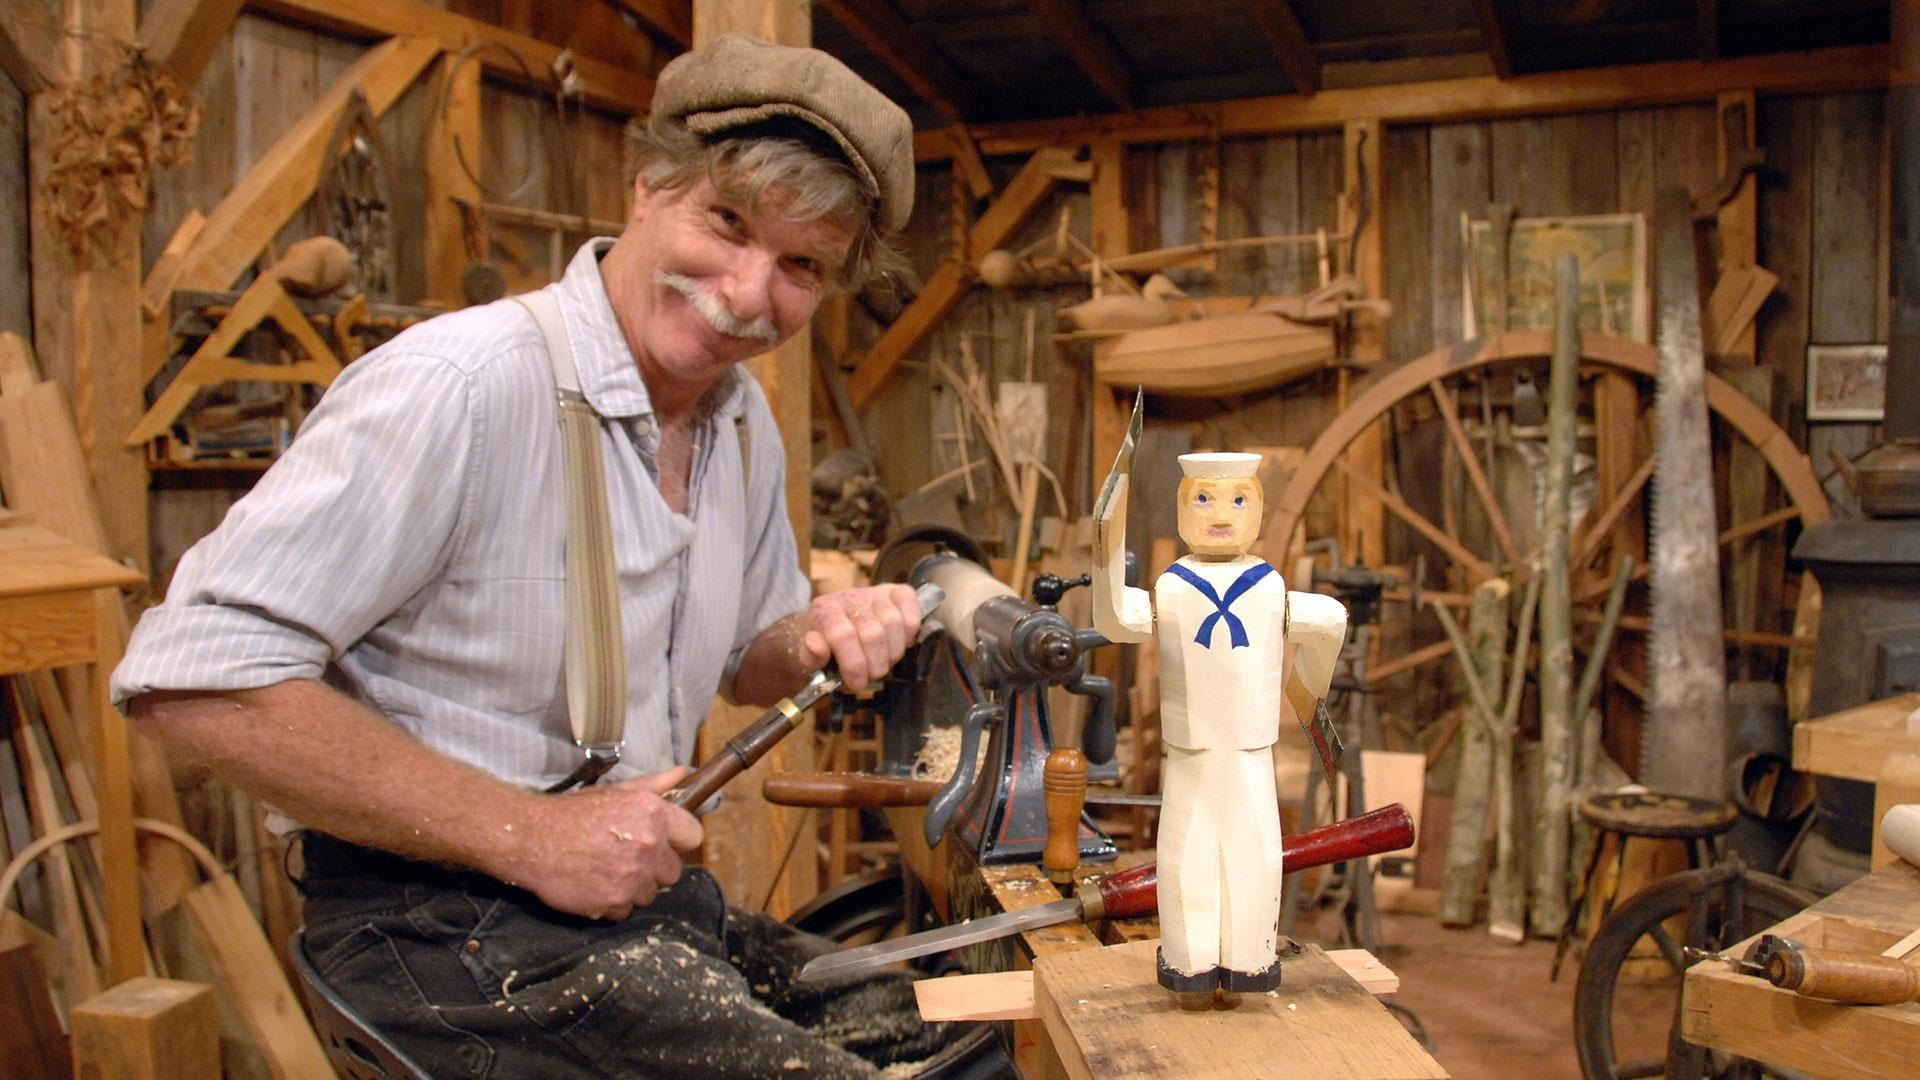 Waving Arm Whirlygigs | The Woodwright's Shop | PBS